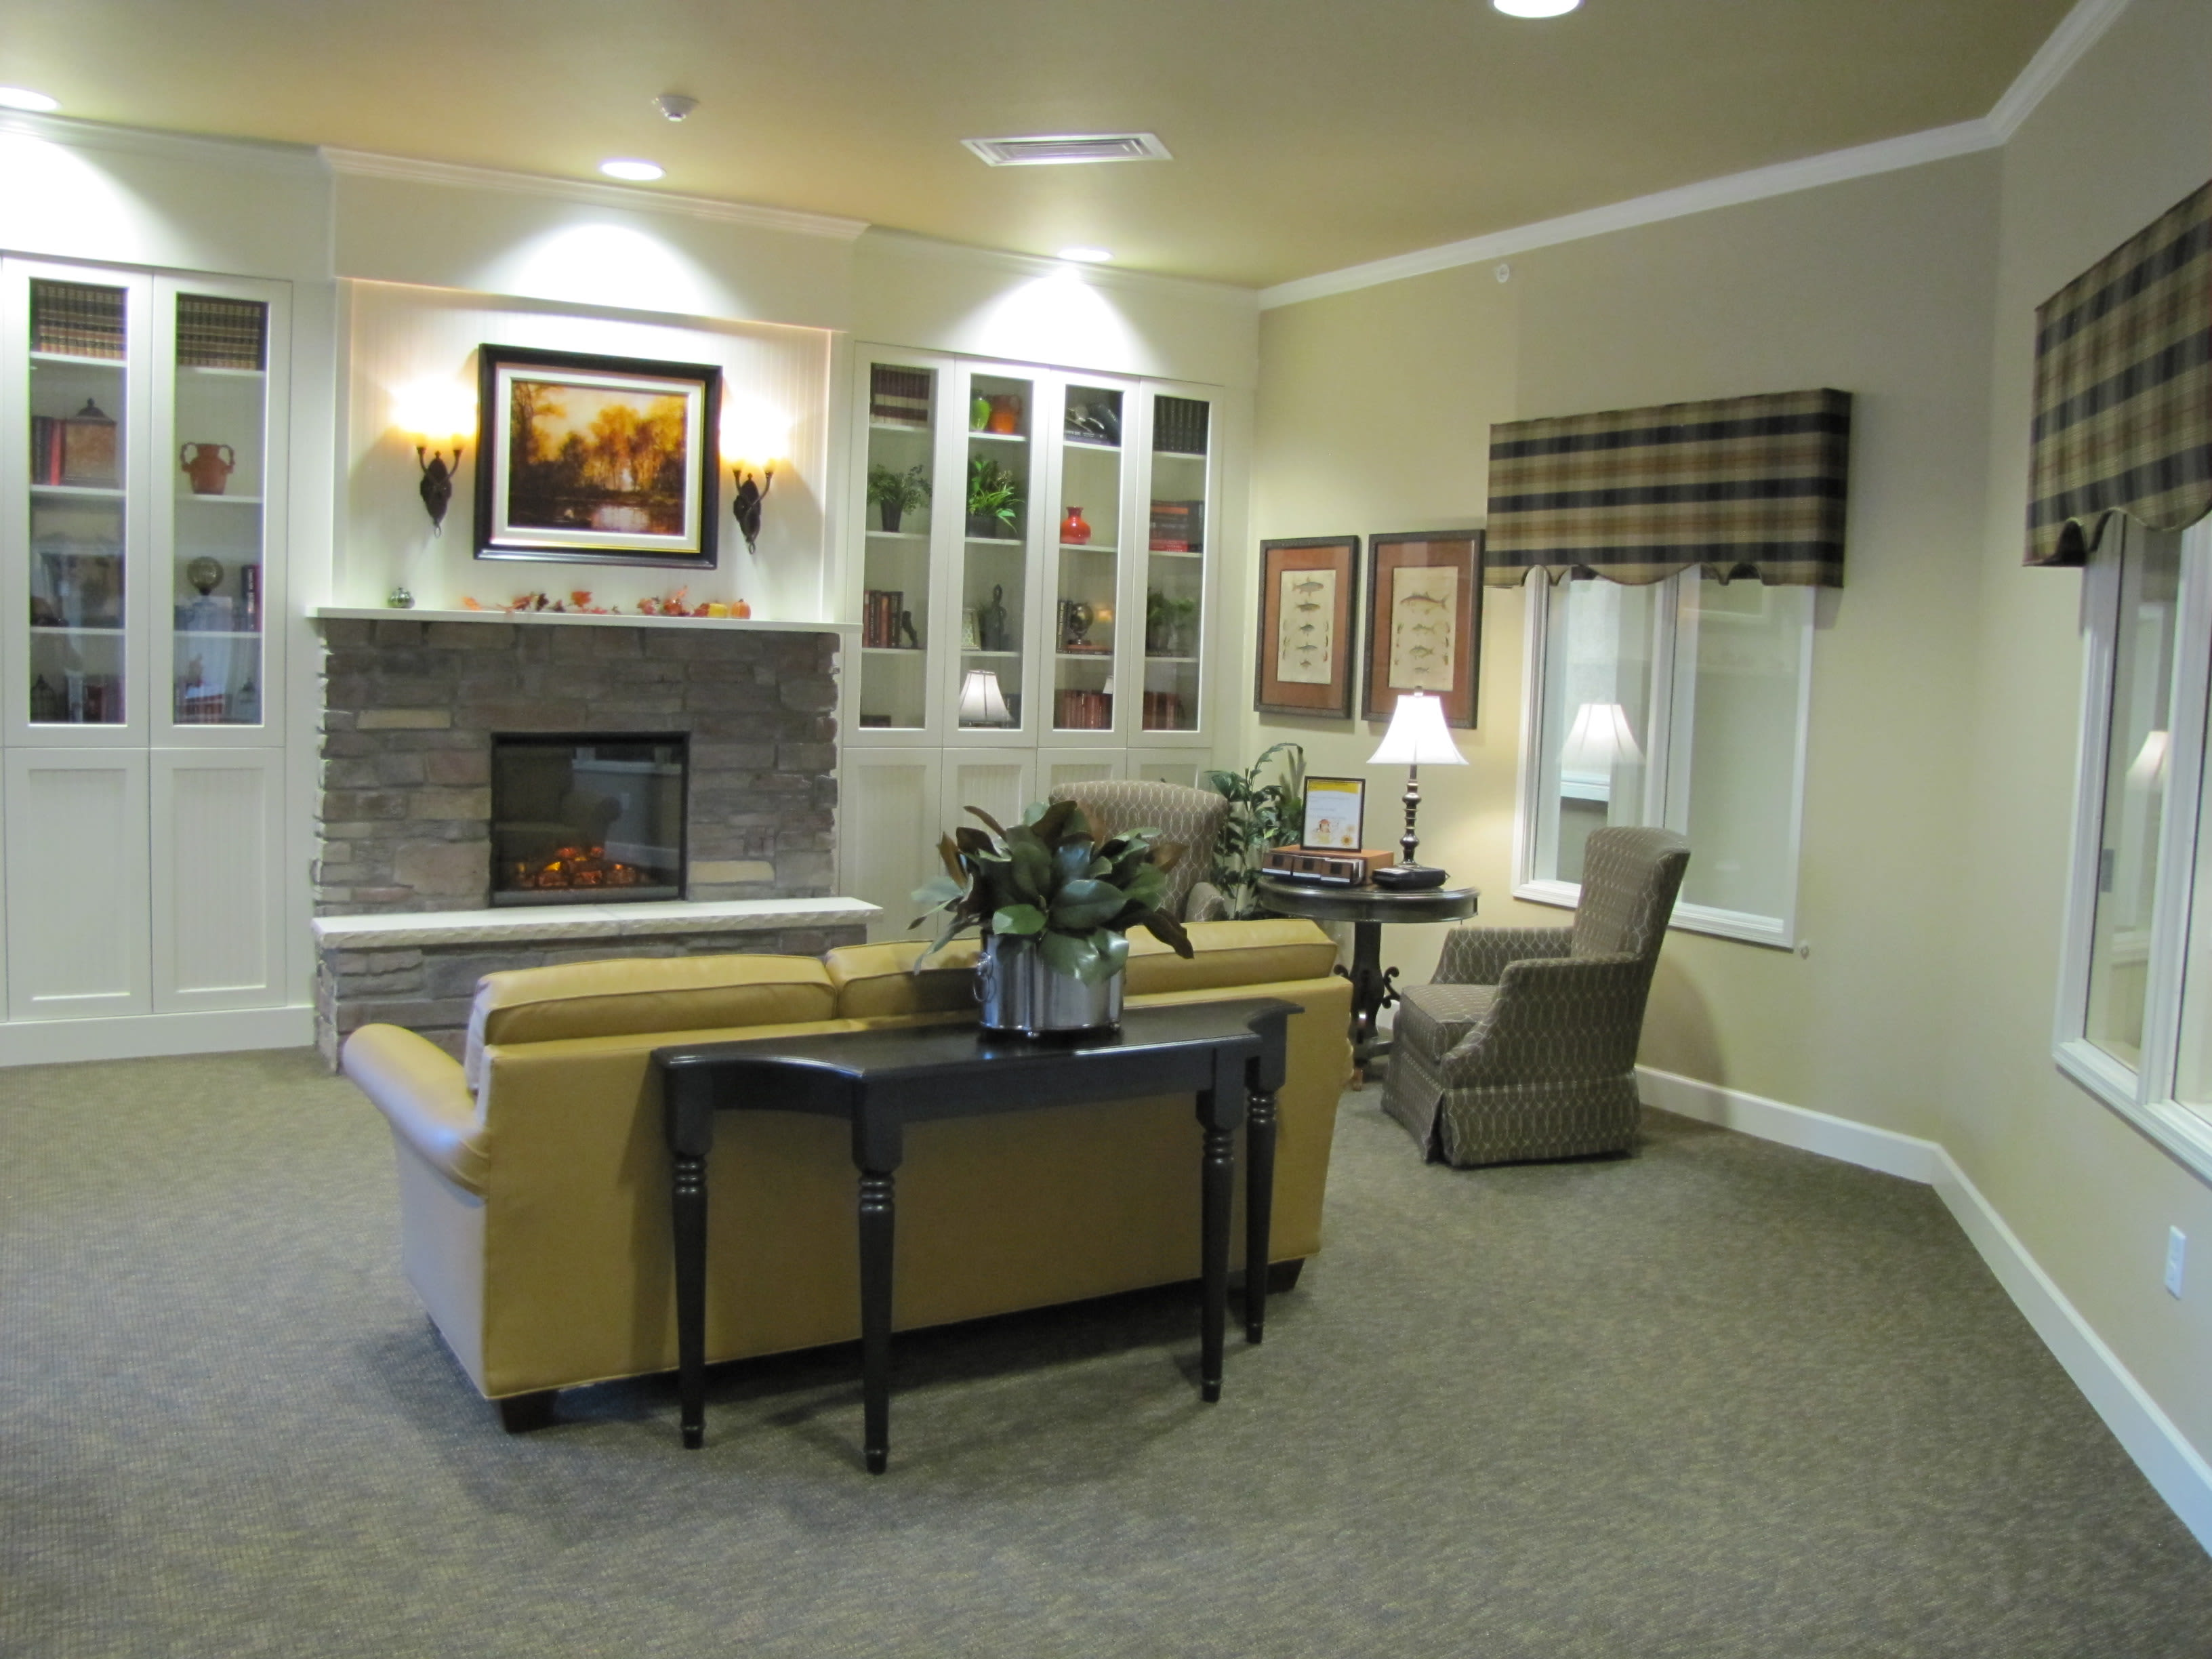 Enjoy a beautiful living room at Edgemont Place Alzheimer's Special Care Center